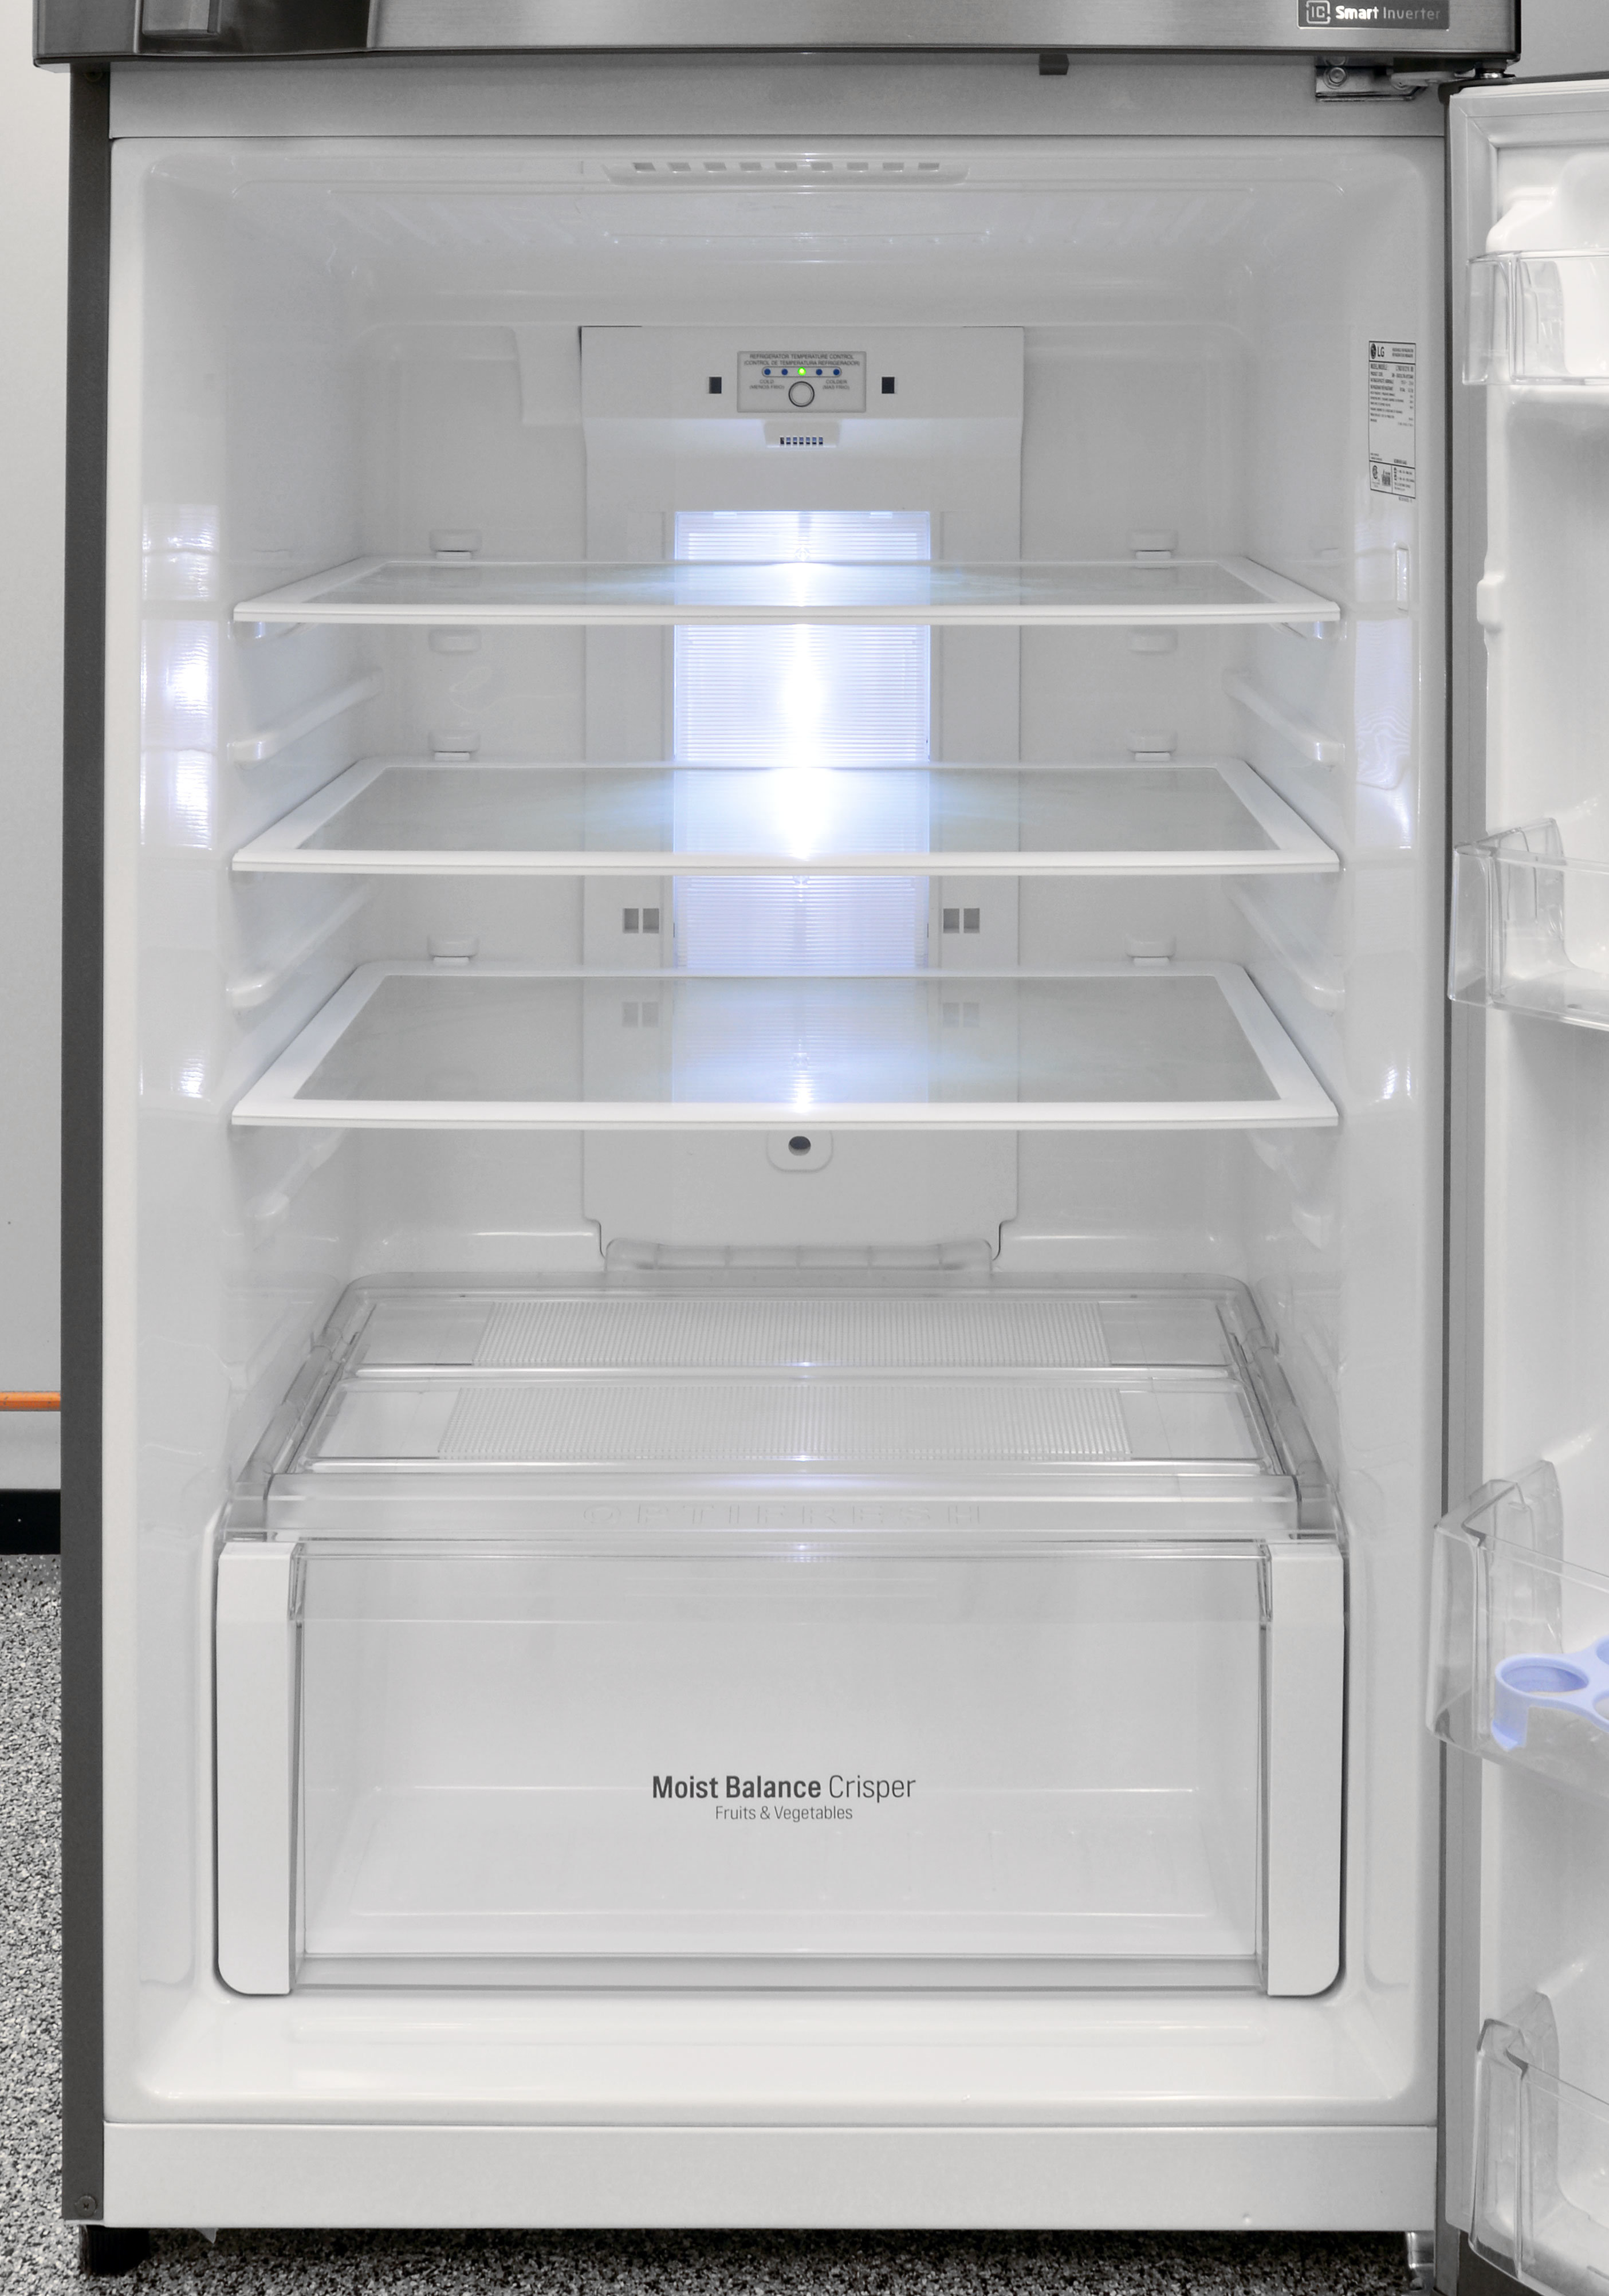 The LG LTNS16121V's fridge interior is stylish, but the LED lighting is surprisingly dim.